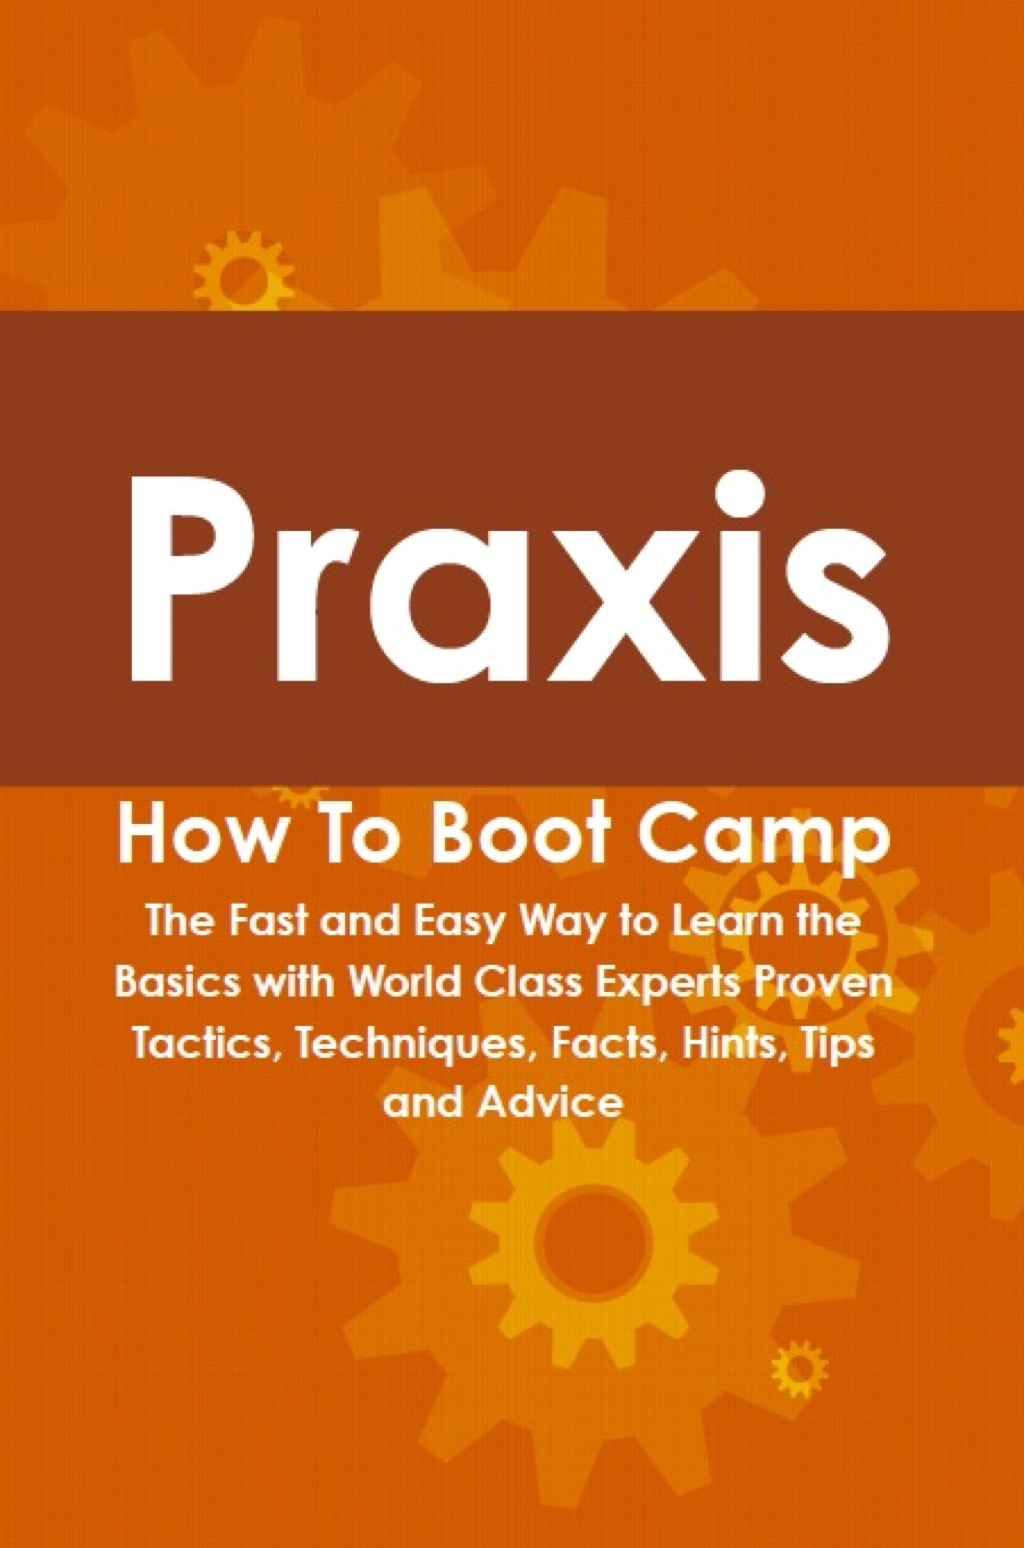 Praxis How To Boot Camp: The Fast and Easy Way to Learn the Basics with World Class Experts Proven Tactics, Techniques, Facts, Hints, Tips and Advice (ebook) eBooks